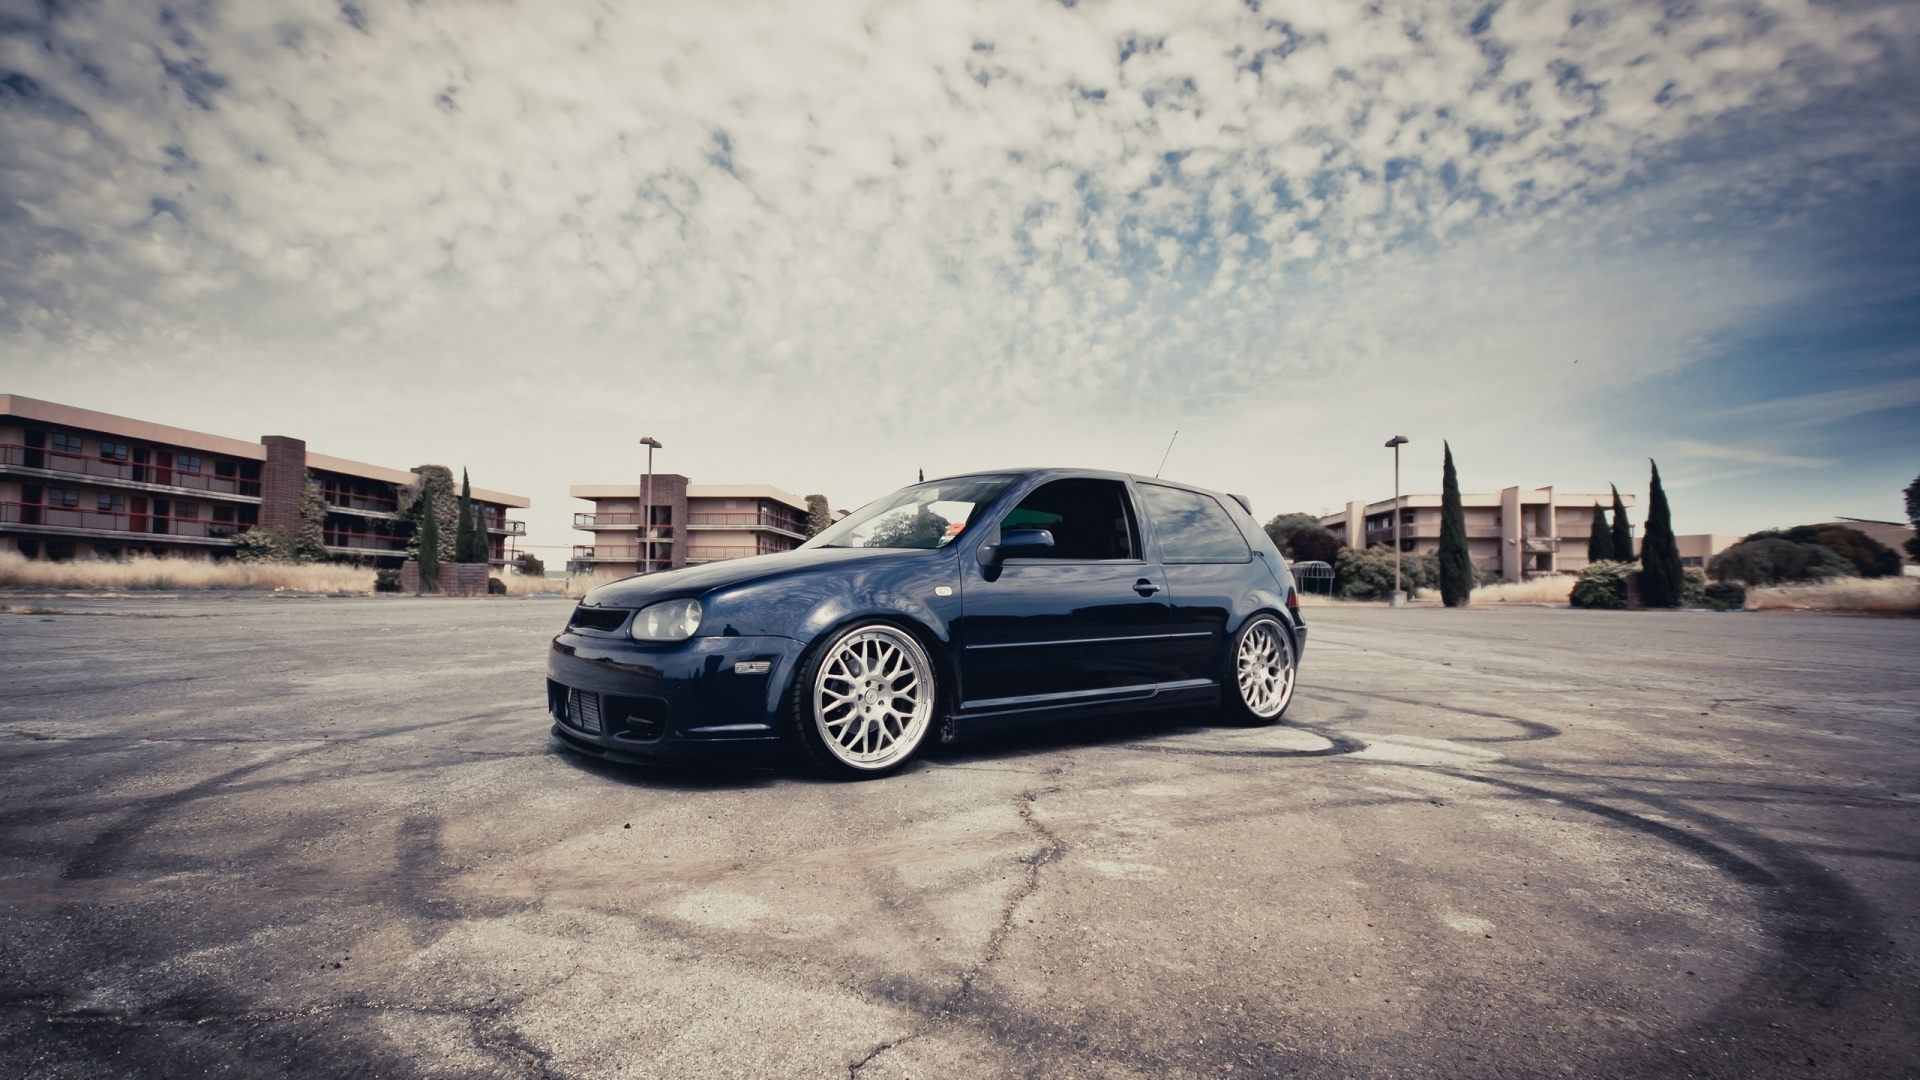 VW Golf III Coupe Tuning for 1920 x 1080 HDTV 1080p resolution